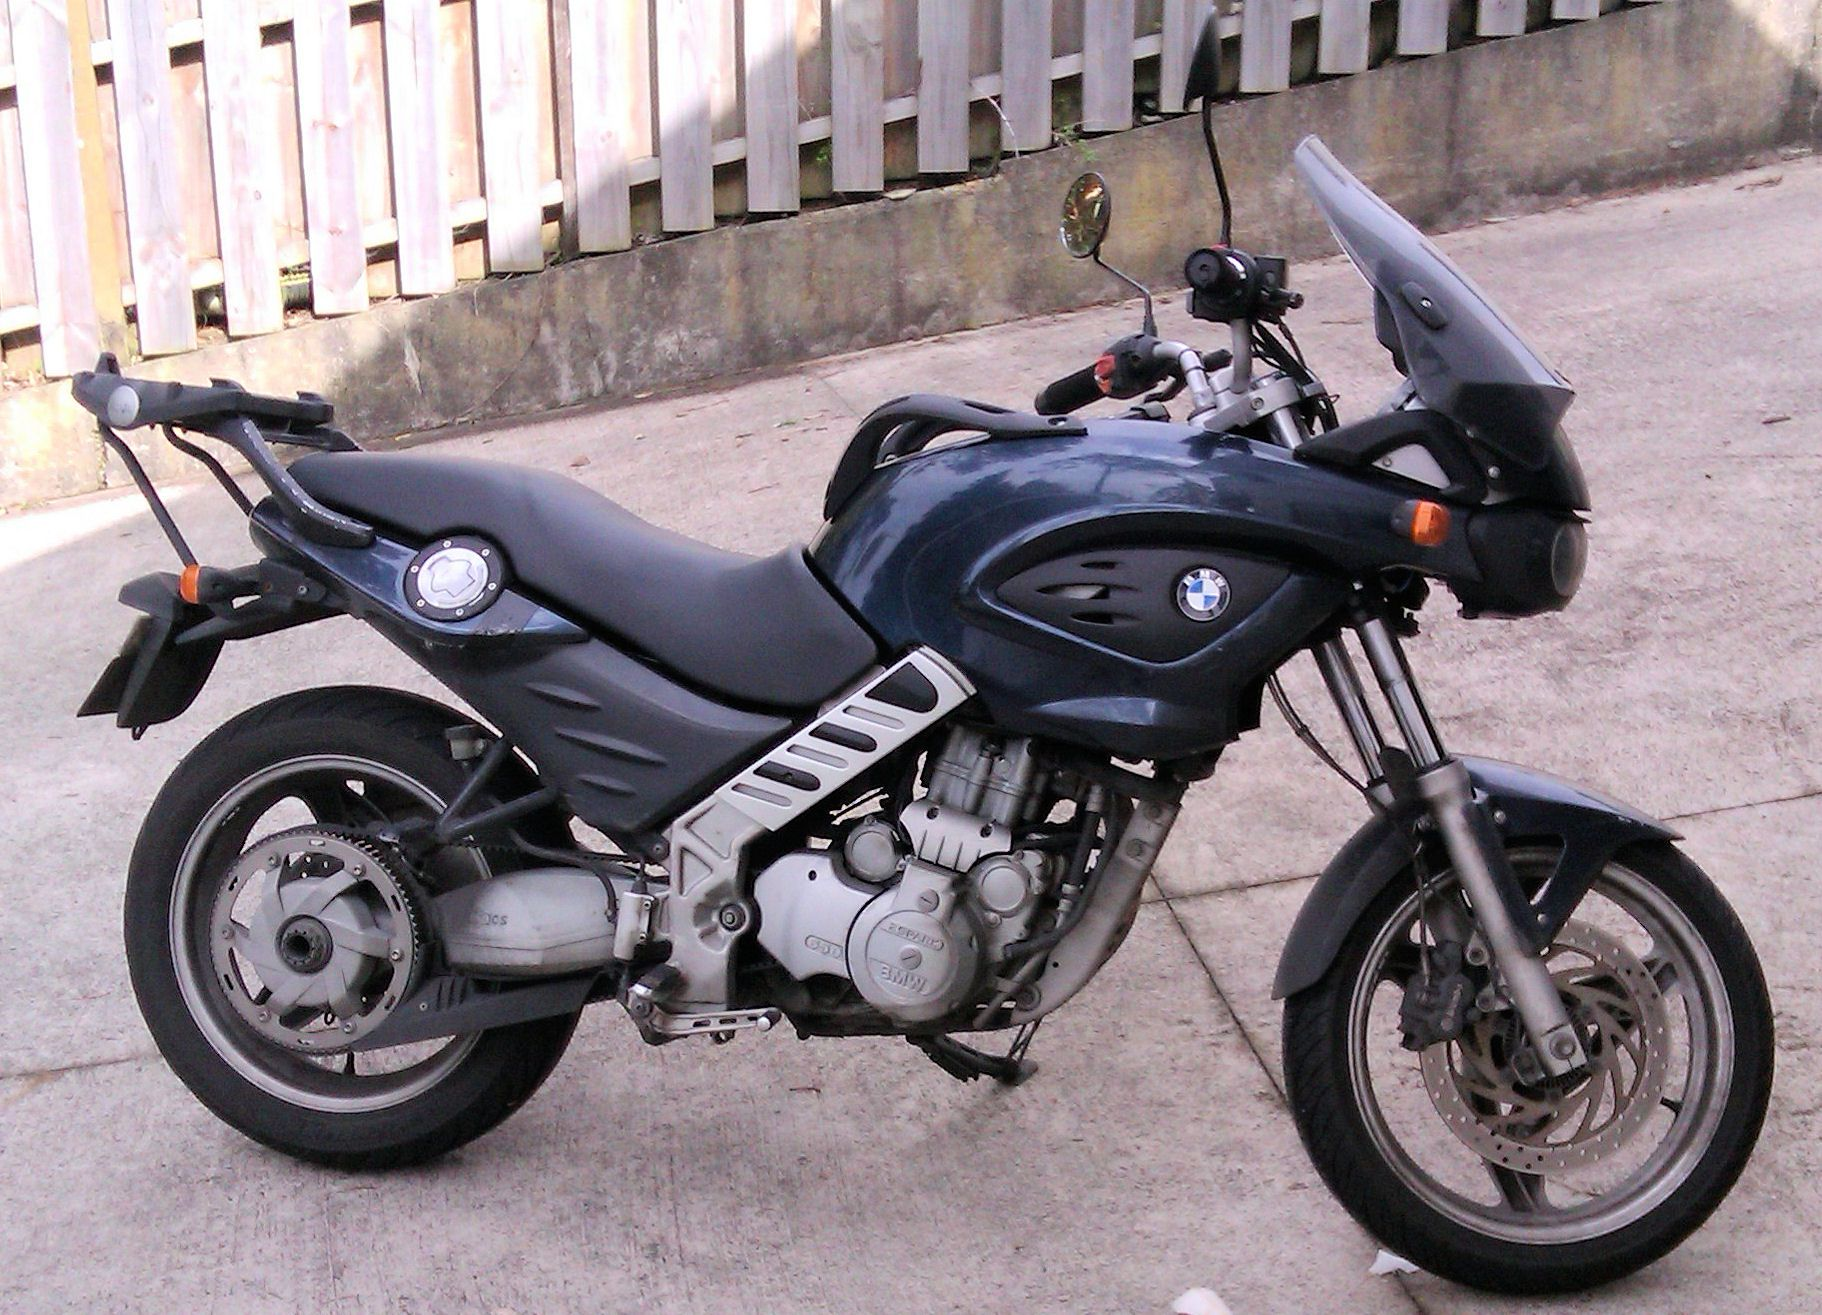 BMW F650 CS 'Scarver'. The fuel tank is under the seat so in the place  where the fuel tank would normally be is a 'stuff-bay' - a most useful  addition to ...